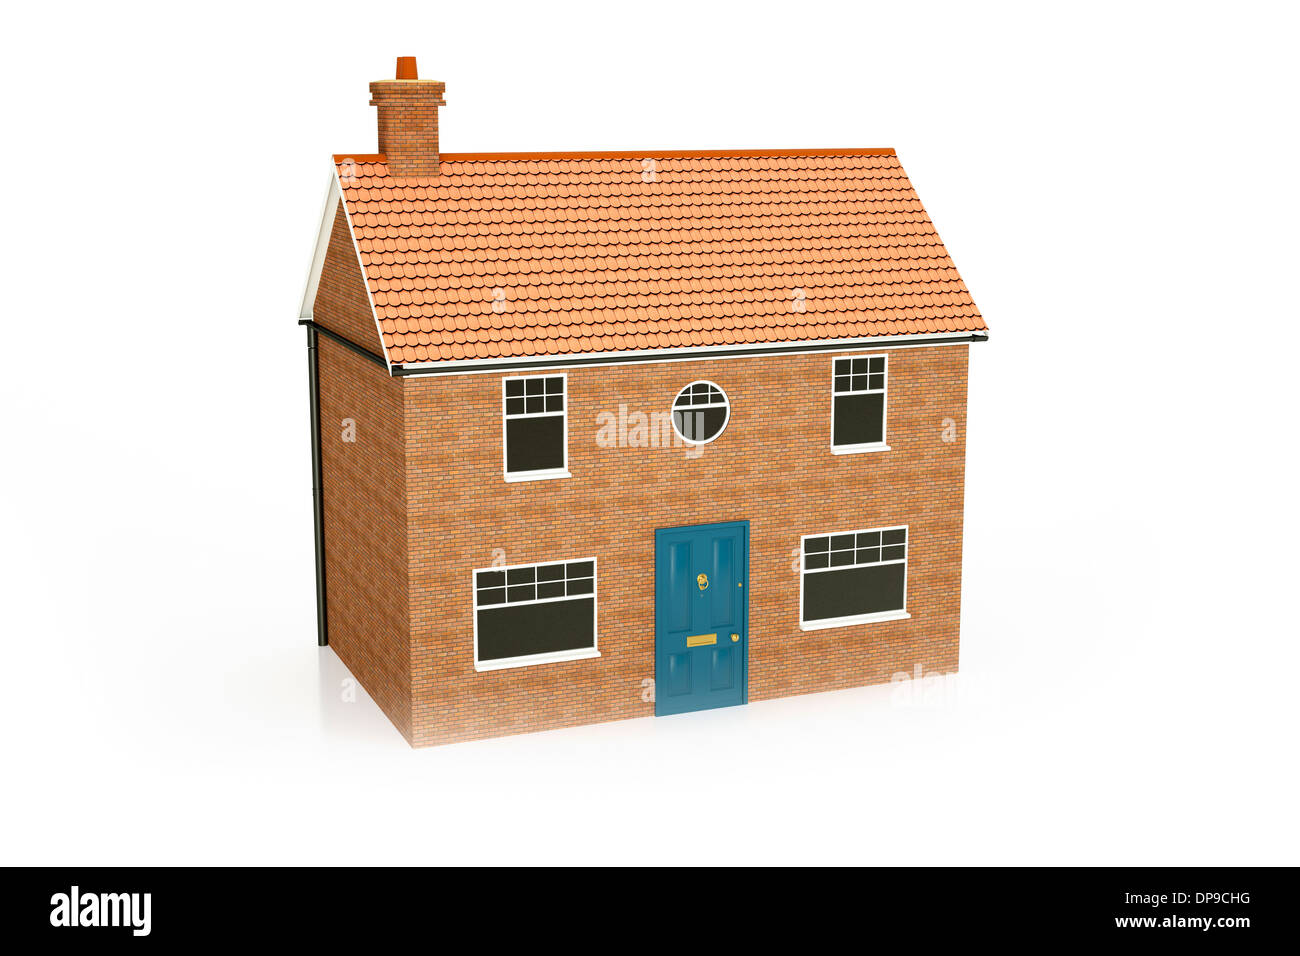 New build detached house home - Stock Image